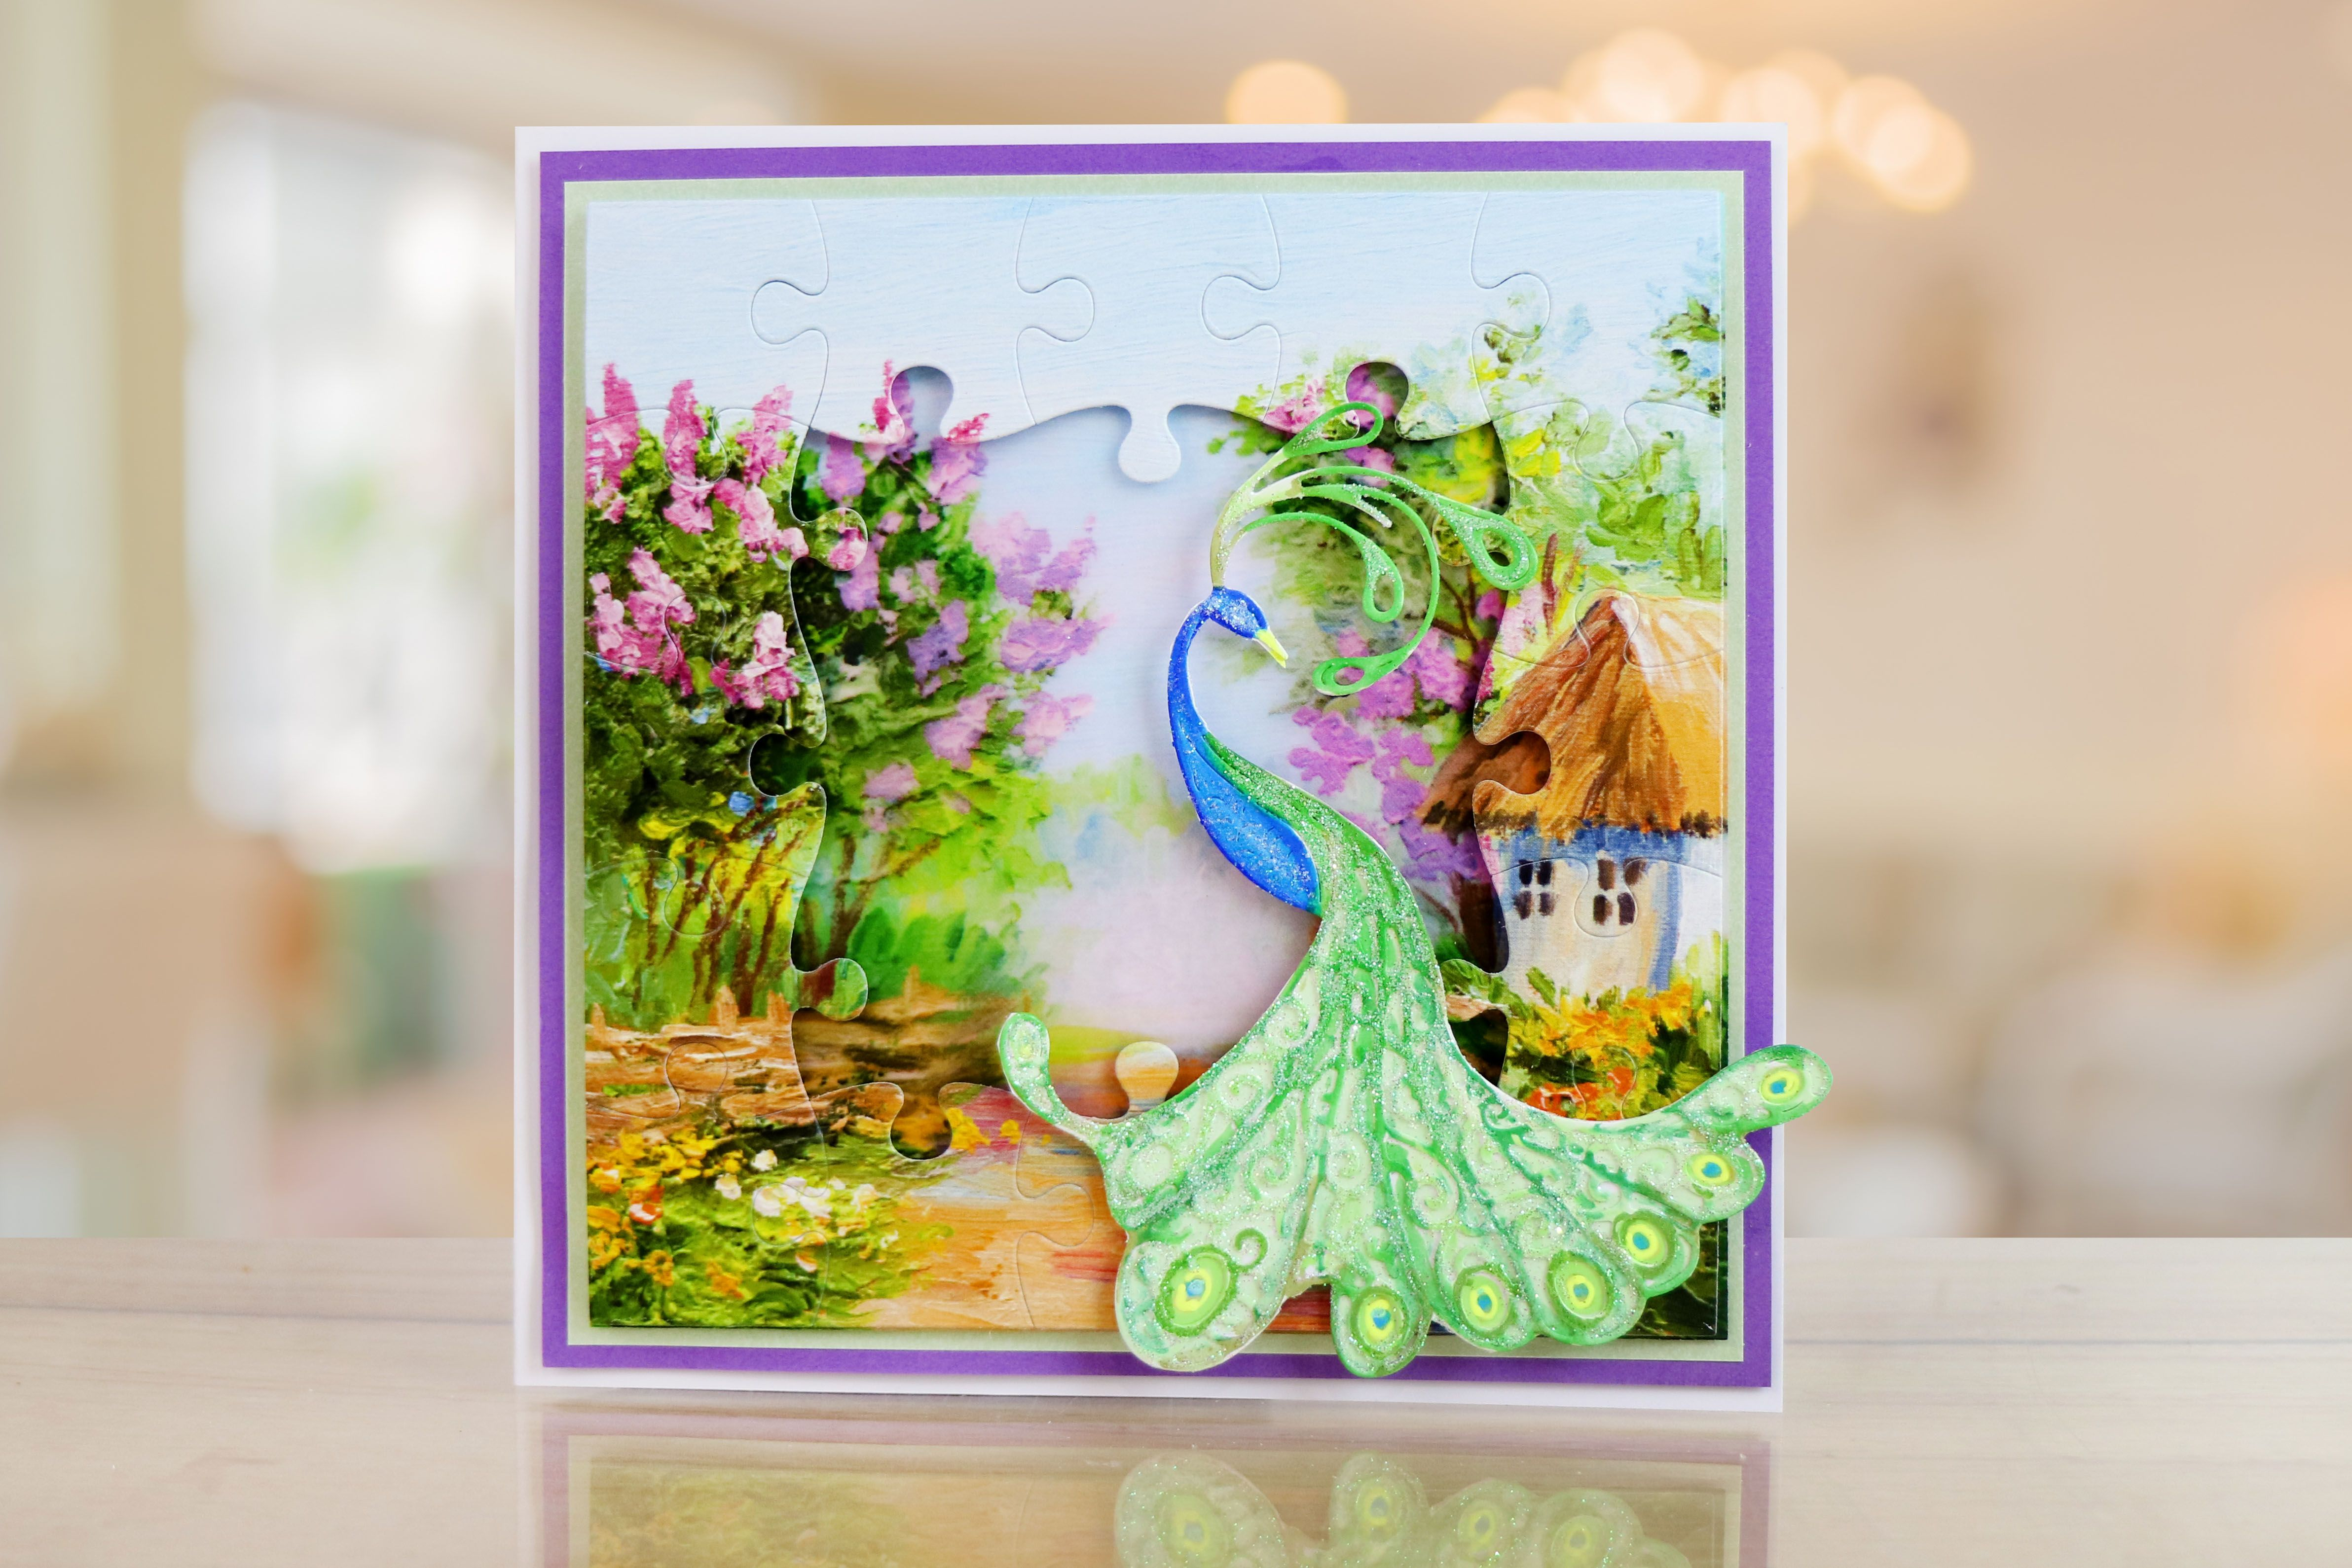 Beautiful greeting card made using the tatteredlaceuk jigsaw die beautiful greeting card made using the tatteredlaceuk jigsaw die and cd rom cardmaking m4hsunfo